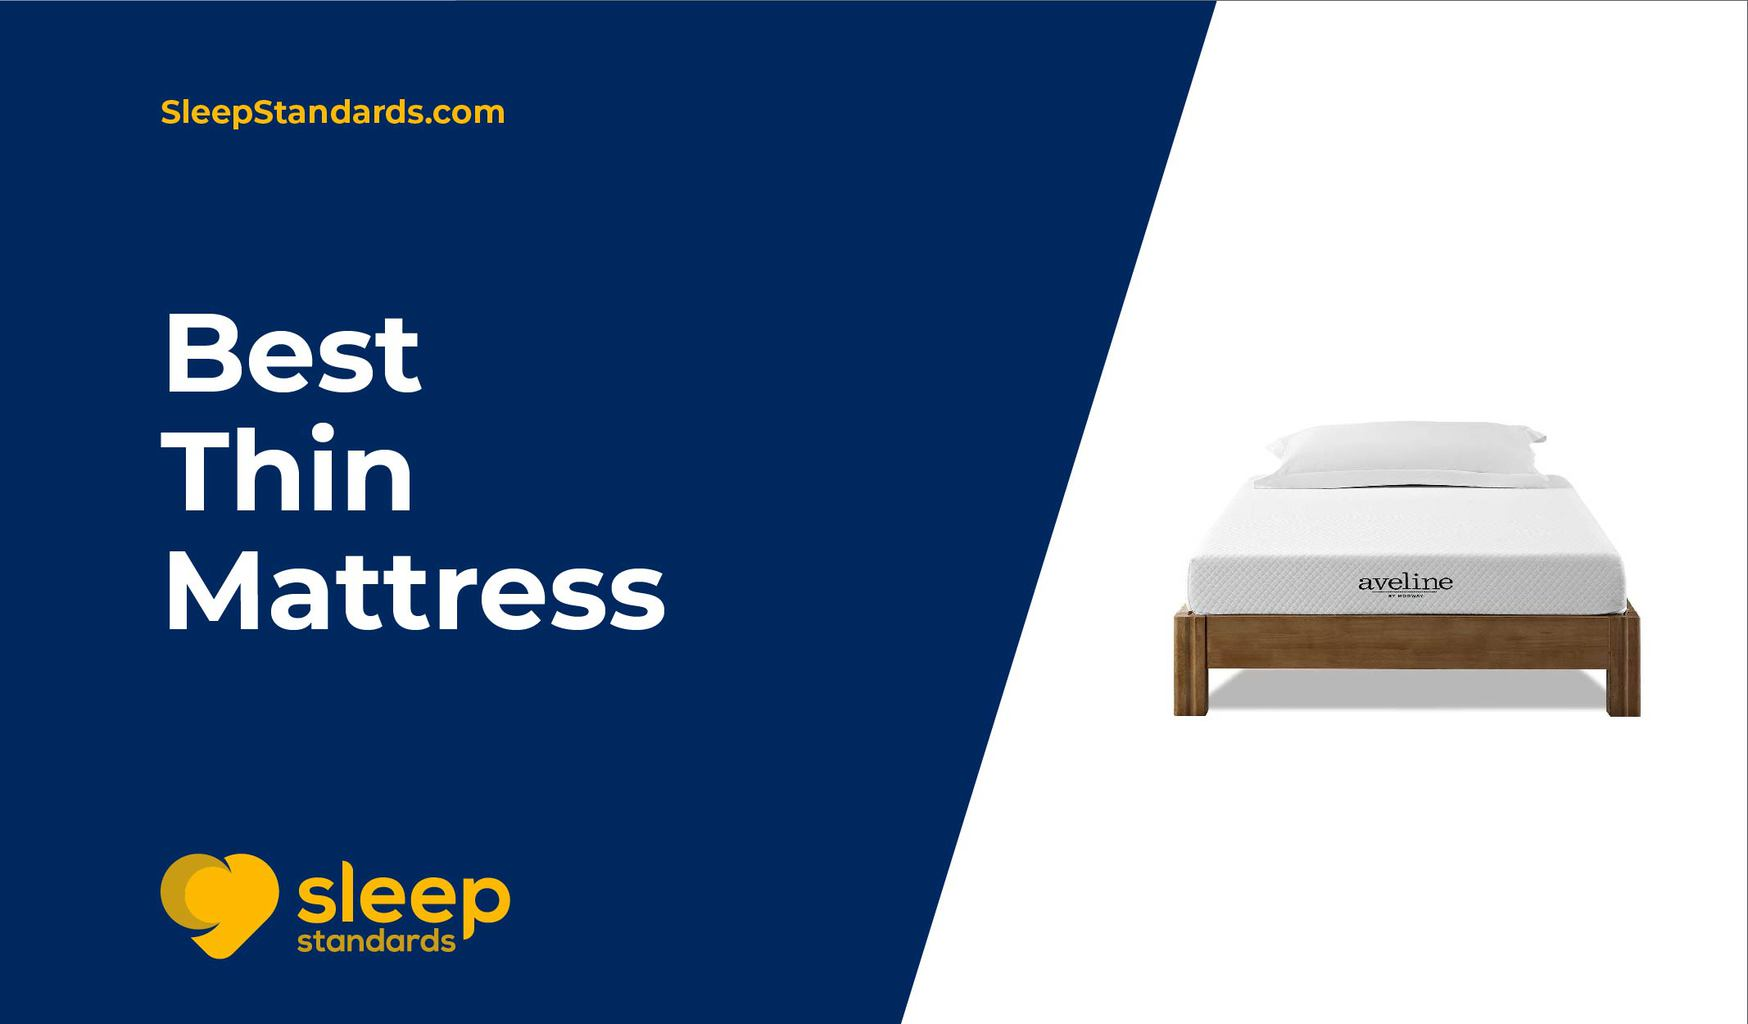 Best Thin Mattress